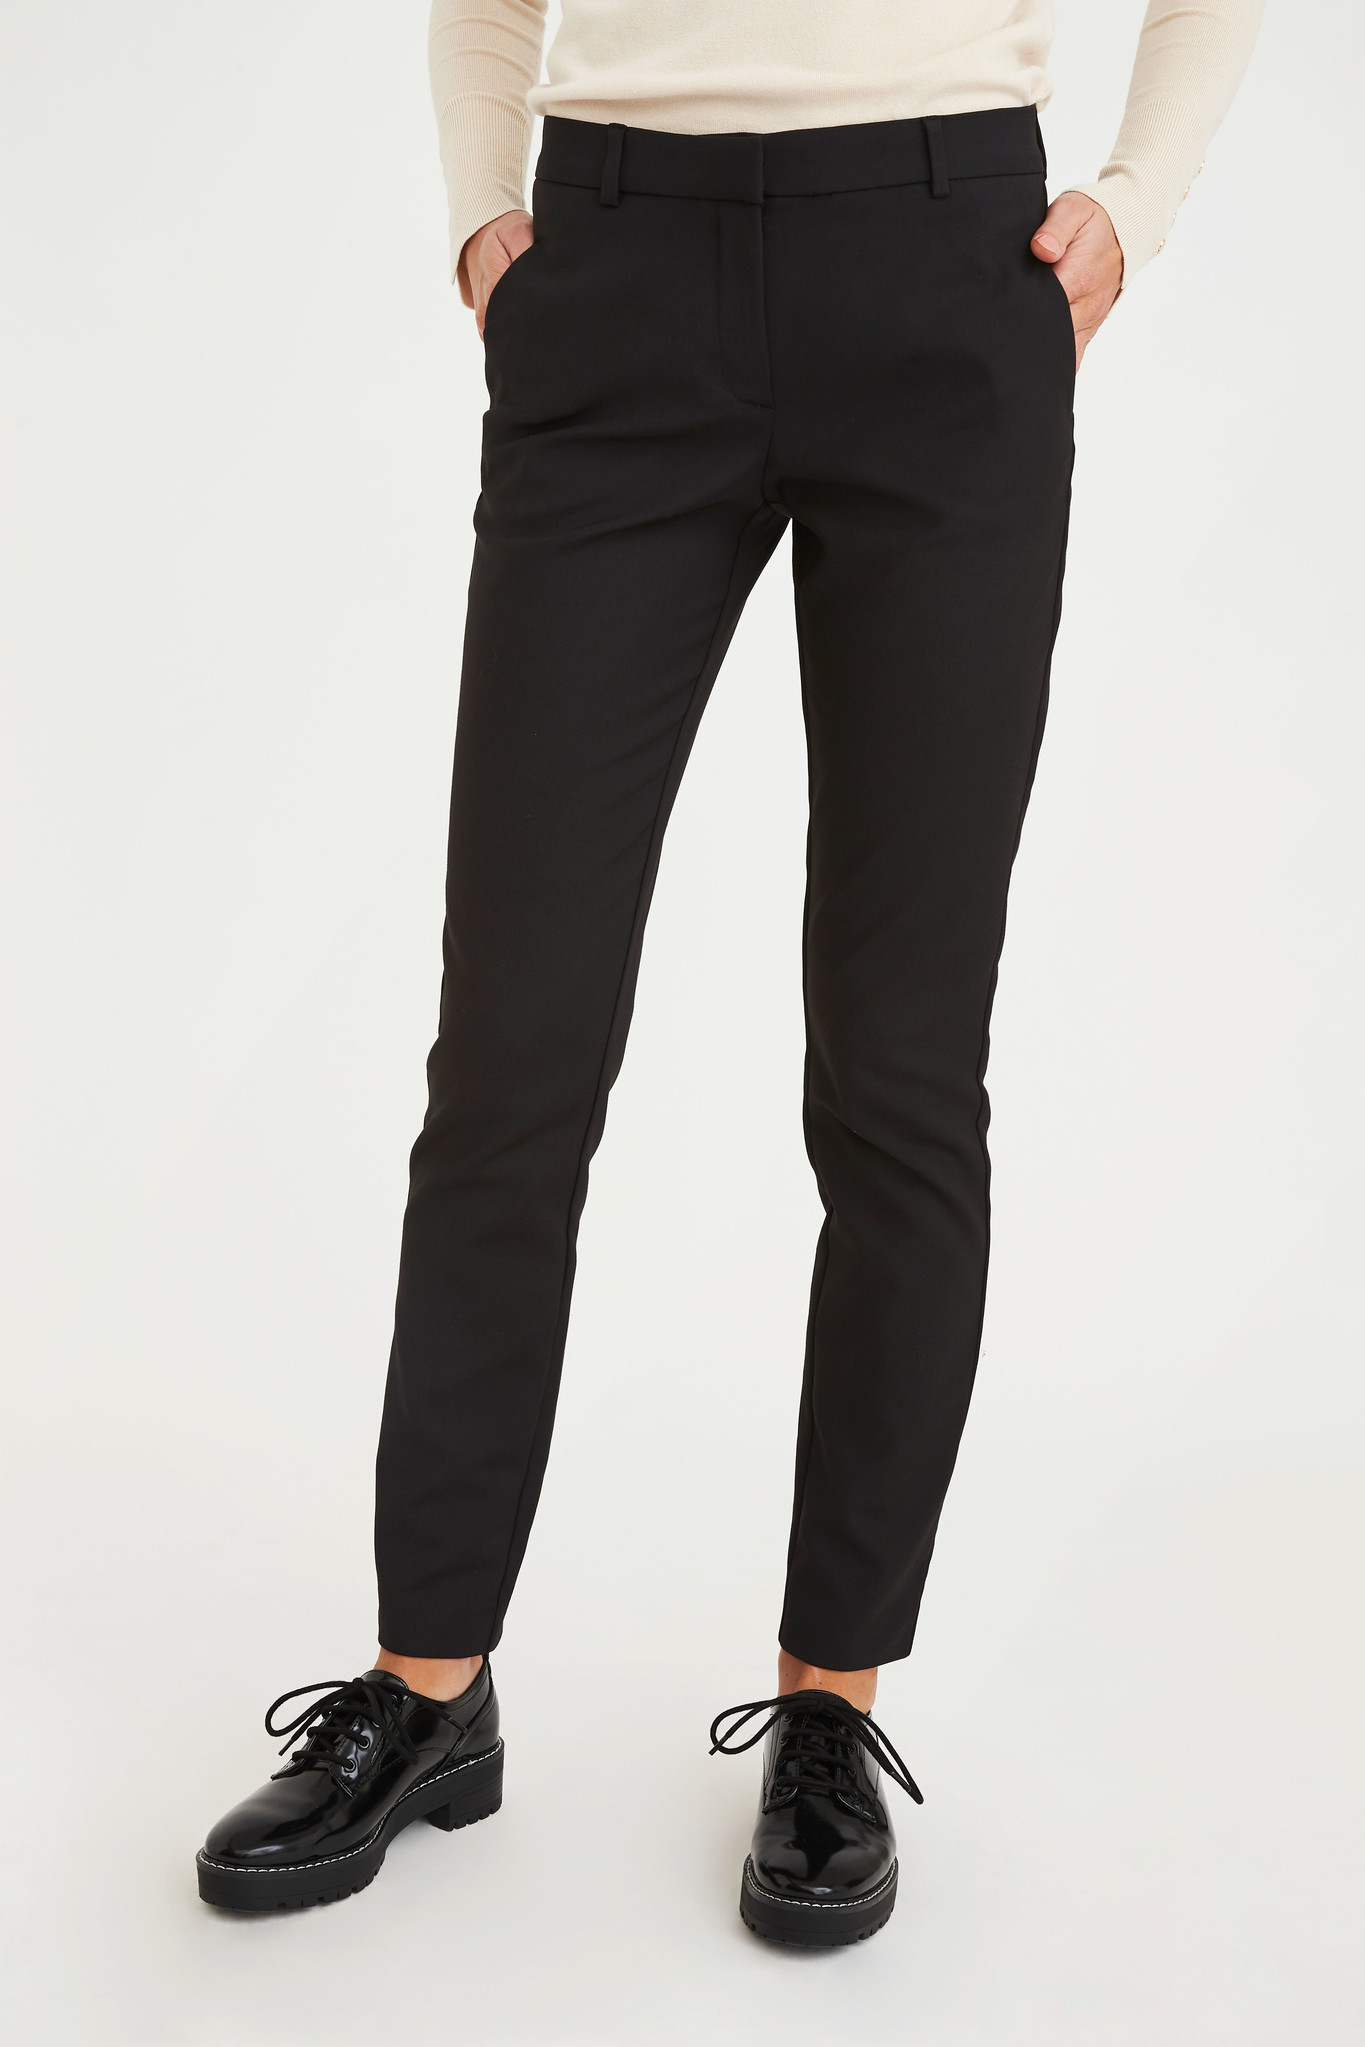 Kylie Pants - Black Jeggin-7